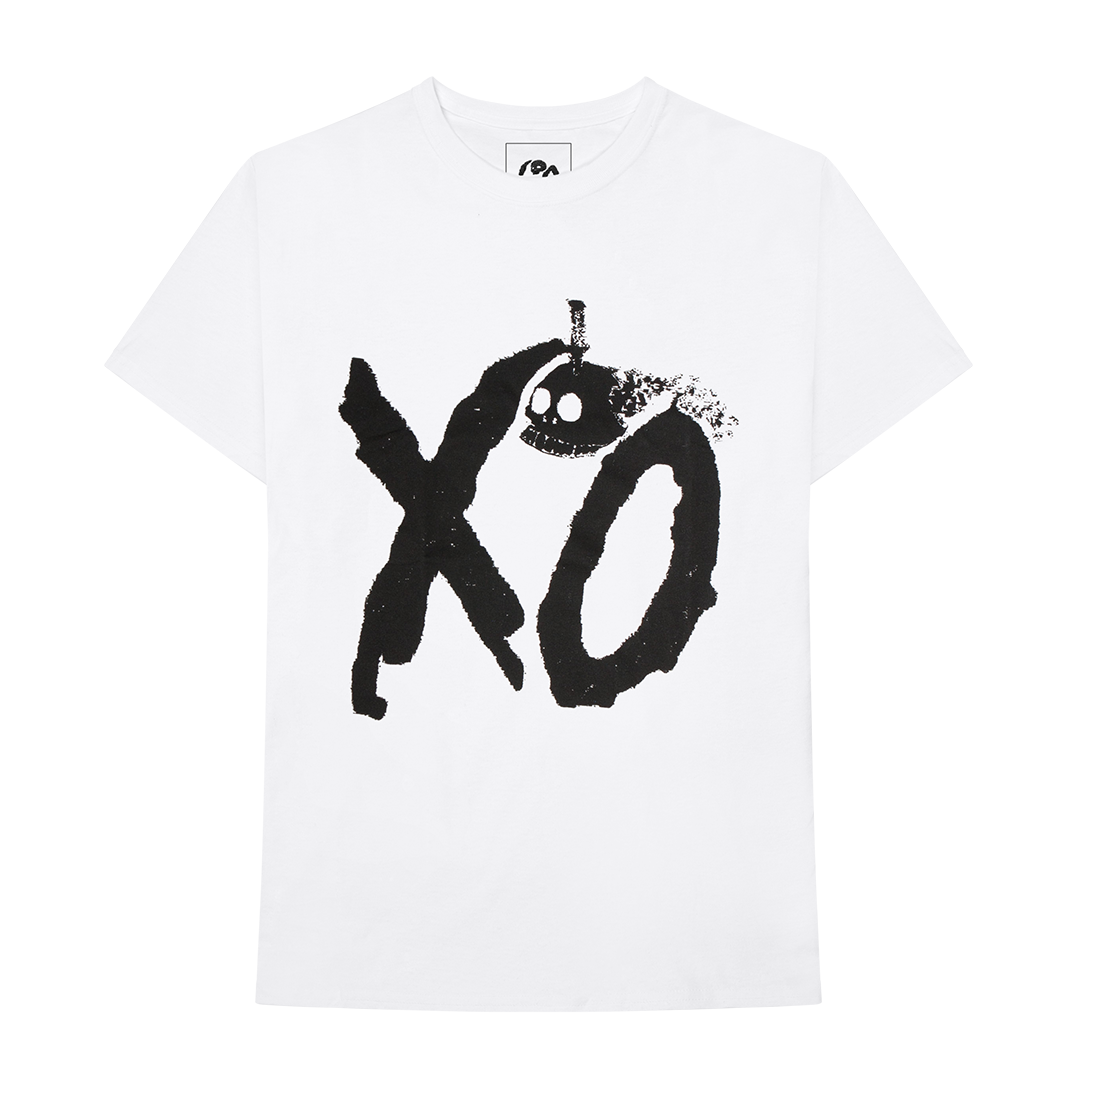 The Weeknd: CHAPTER VI LOGO TEE I - S